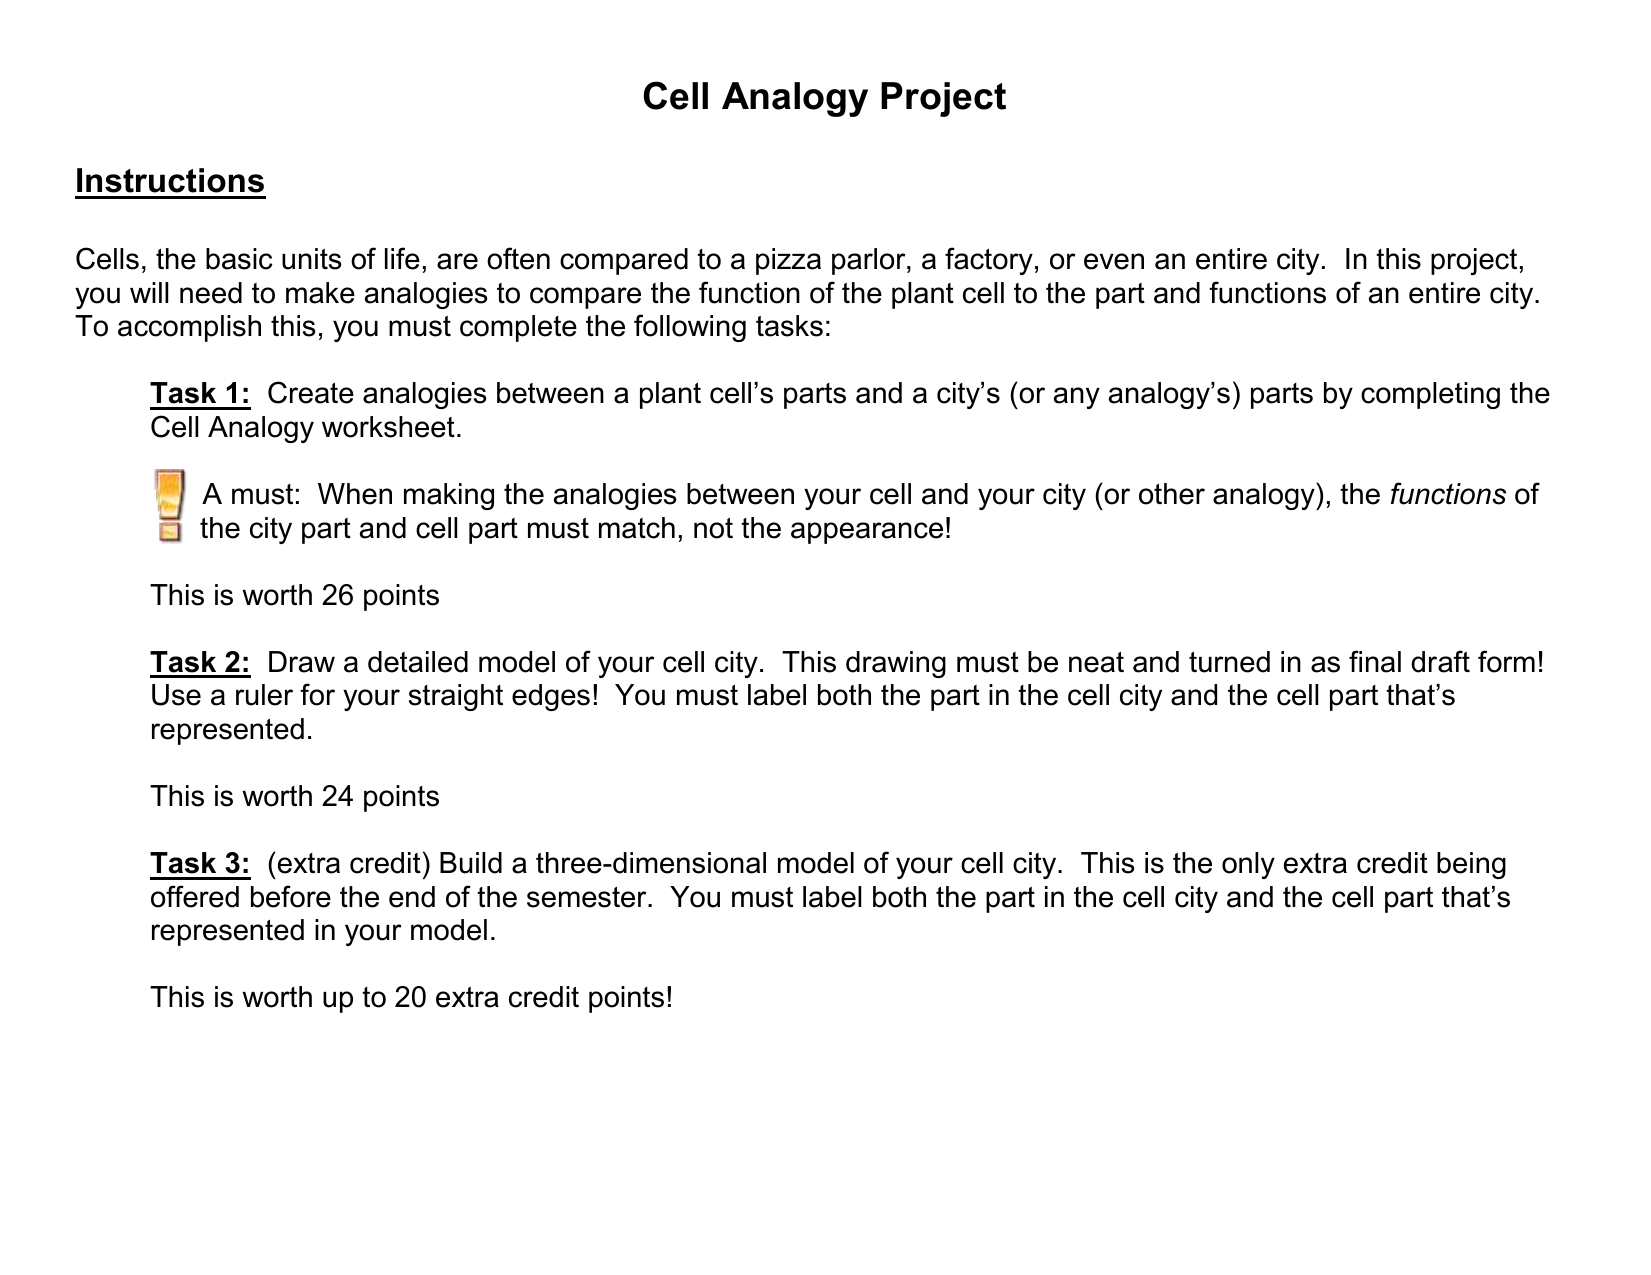 Cell City Analogy Worksheet apexwindowsdoors – Analogy Worksheet